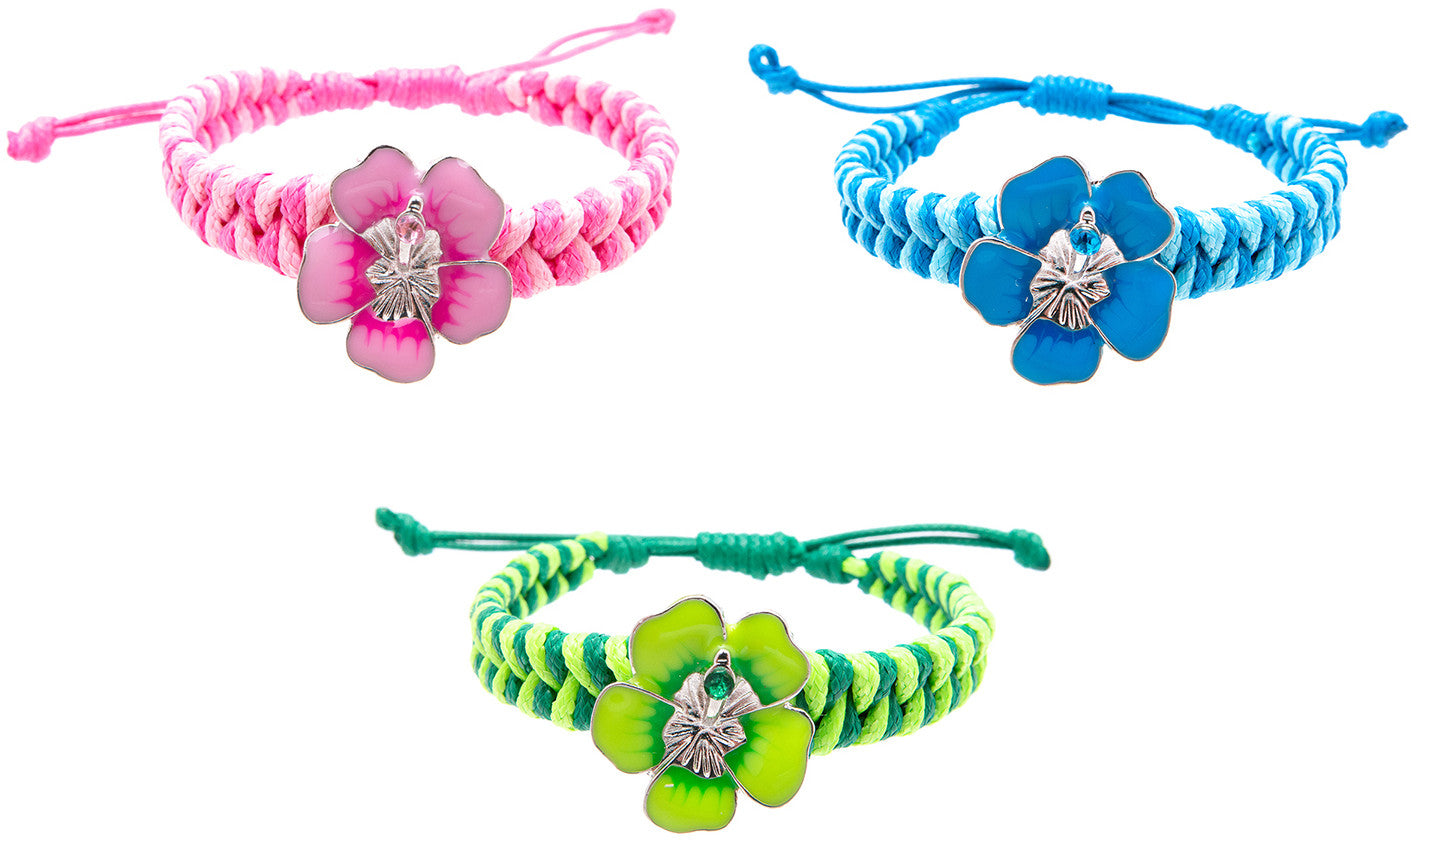 RFC940B-8 Tie-Dye Hibiscus Flower With Stone Braided Adjustable Bracelet - 12 Pcs Pack Unit